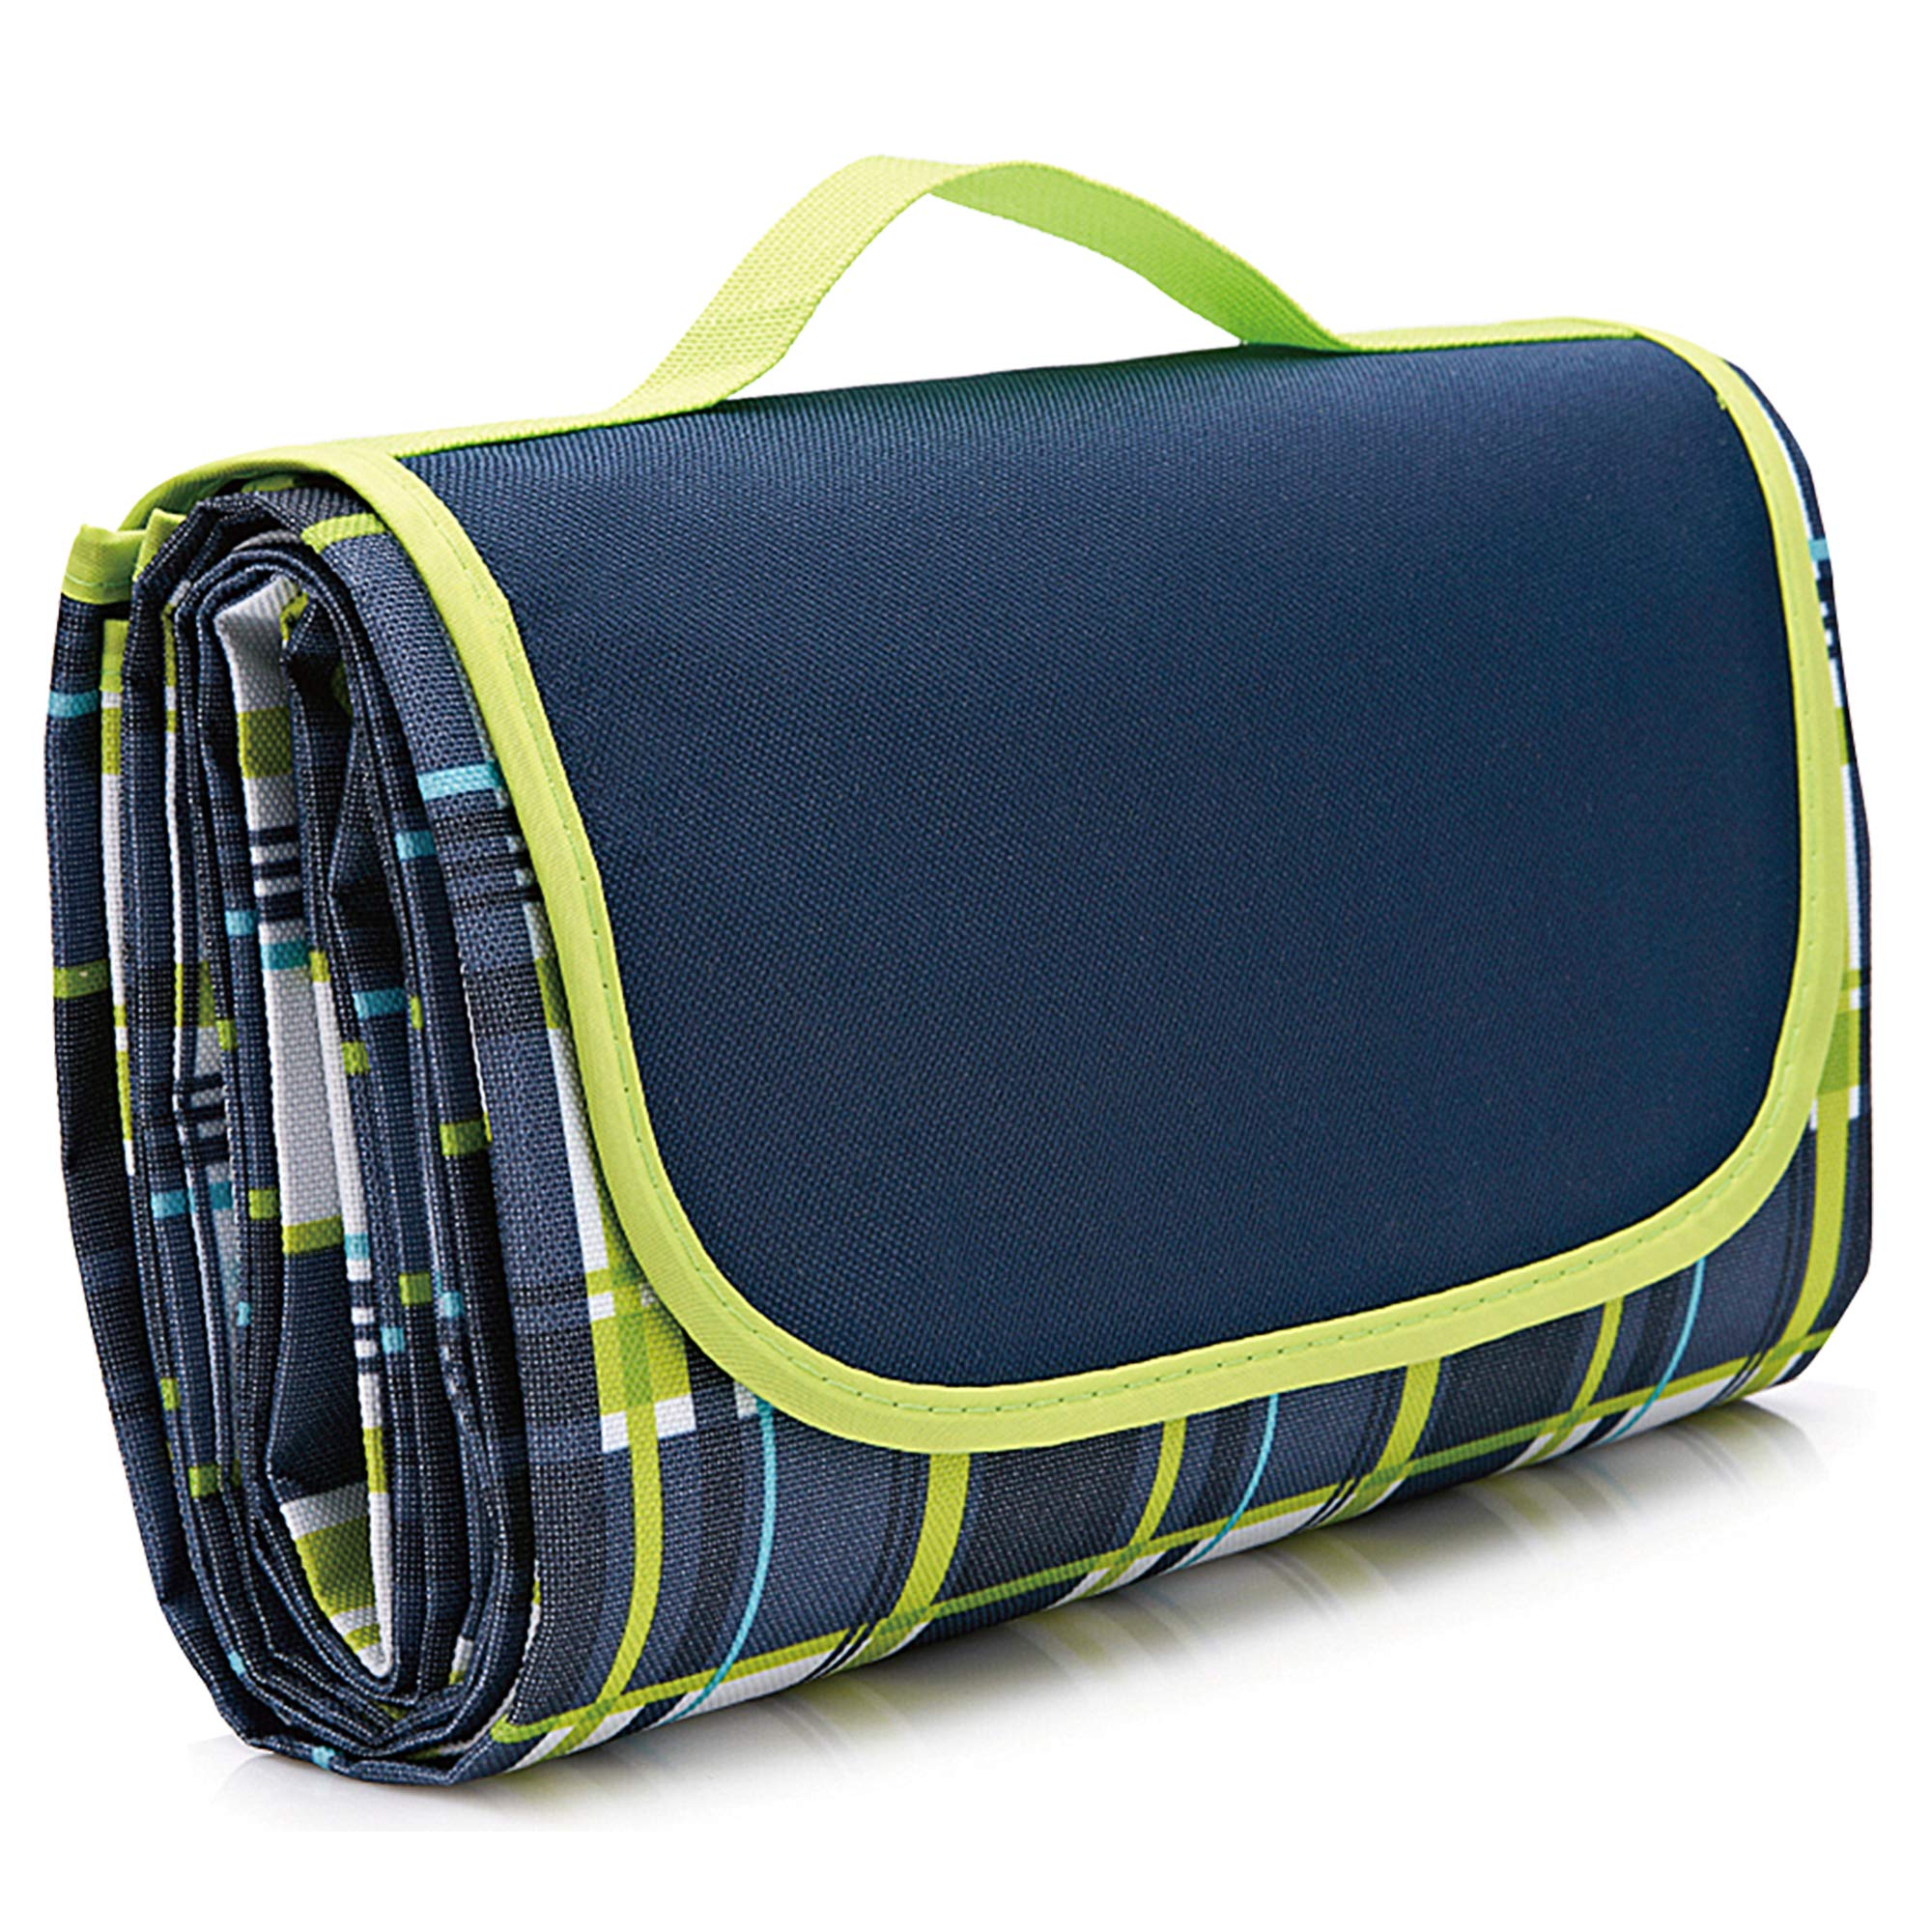 NaturalRays Extra Large Picnic & Outdoor Blanket for Water-Resistant Handy Mat Tote Great for Outdoor Beach, Hiking Camping on Grass Waterproof Sand Proof (Green and Blue Striped)